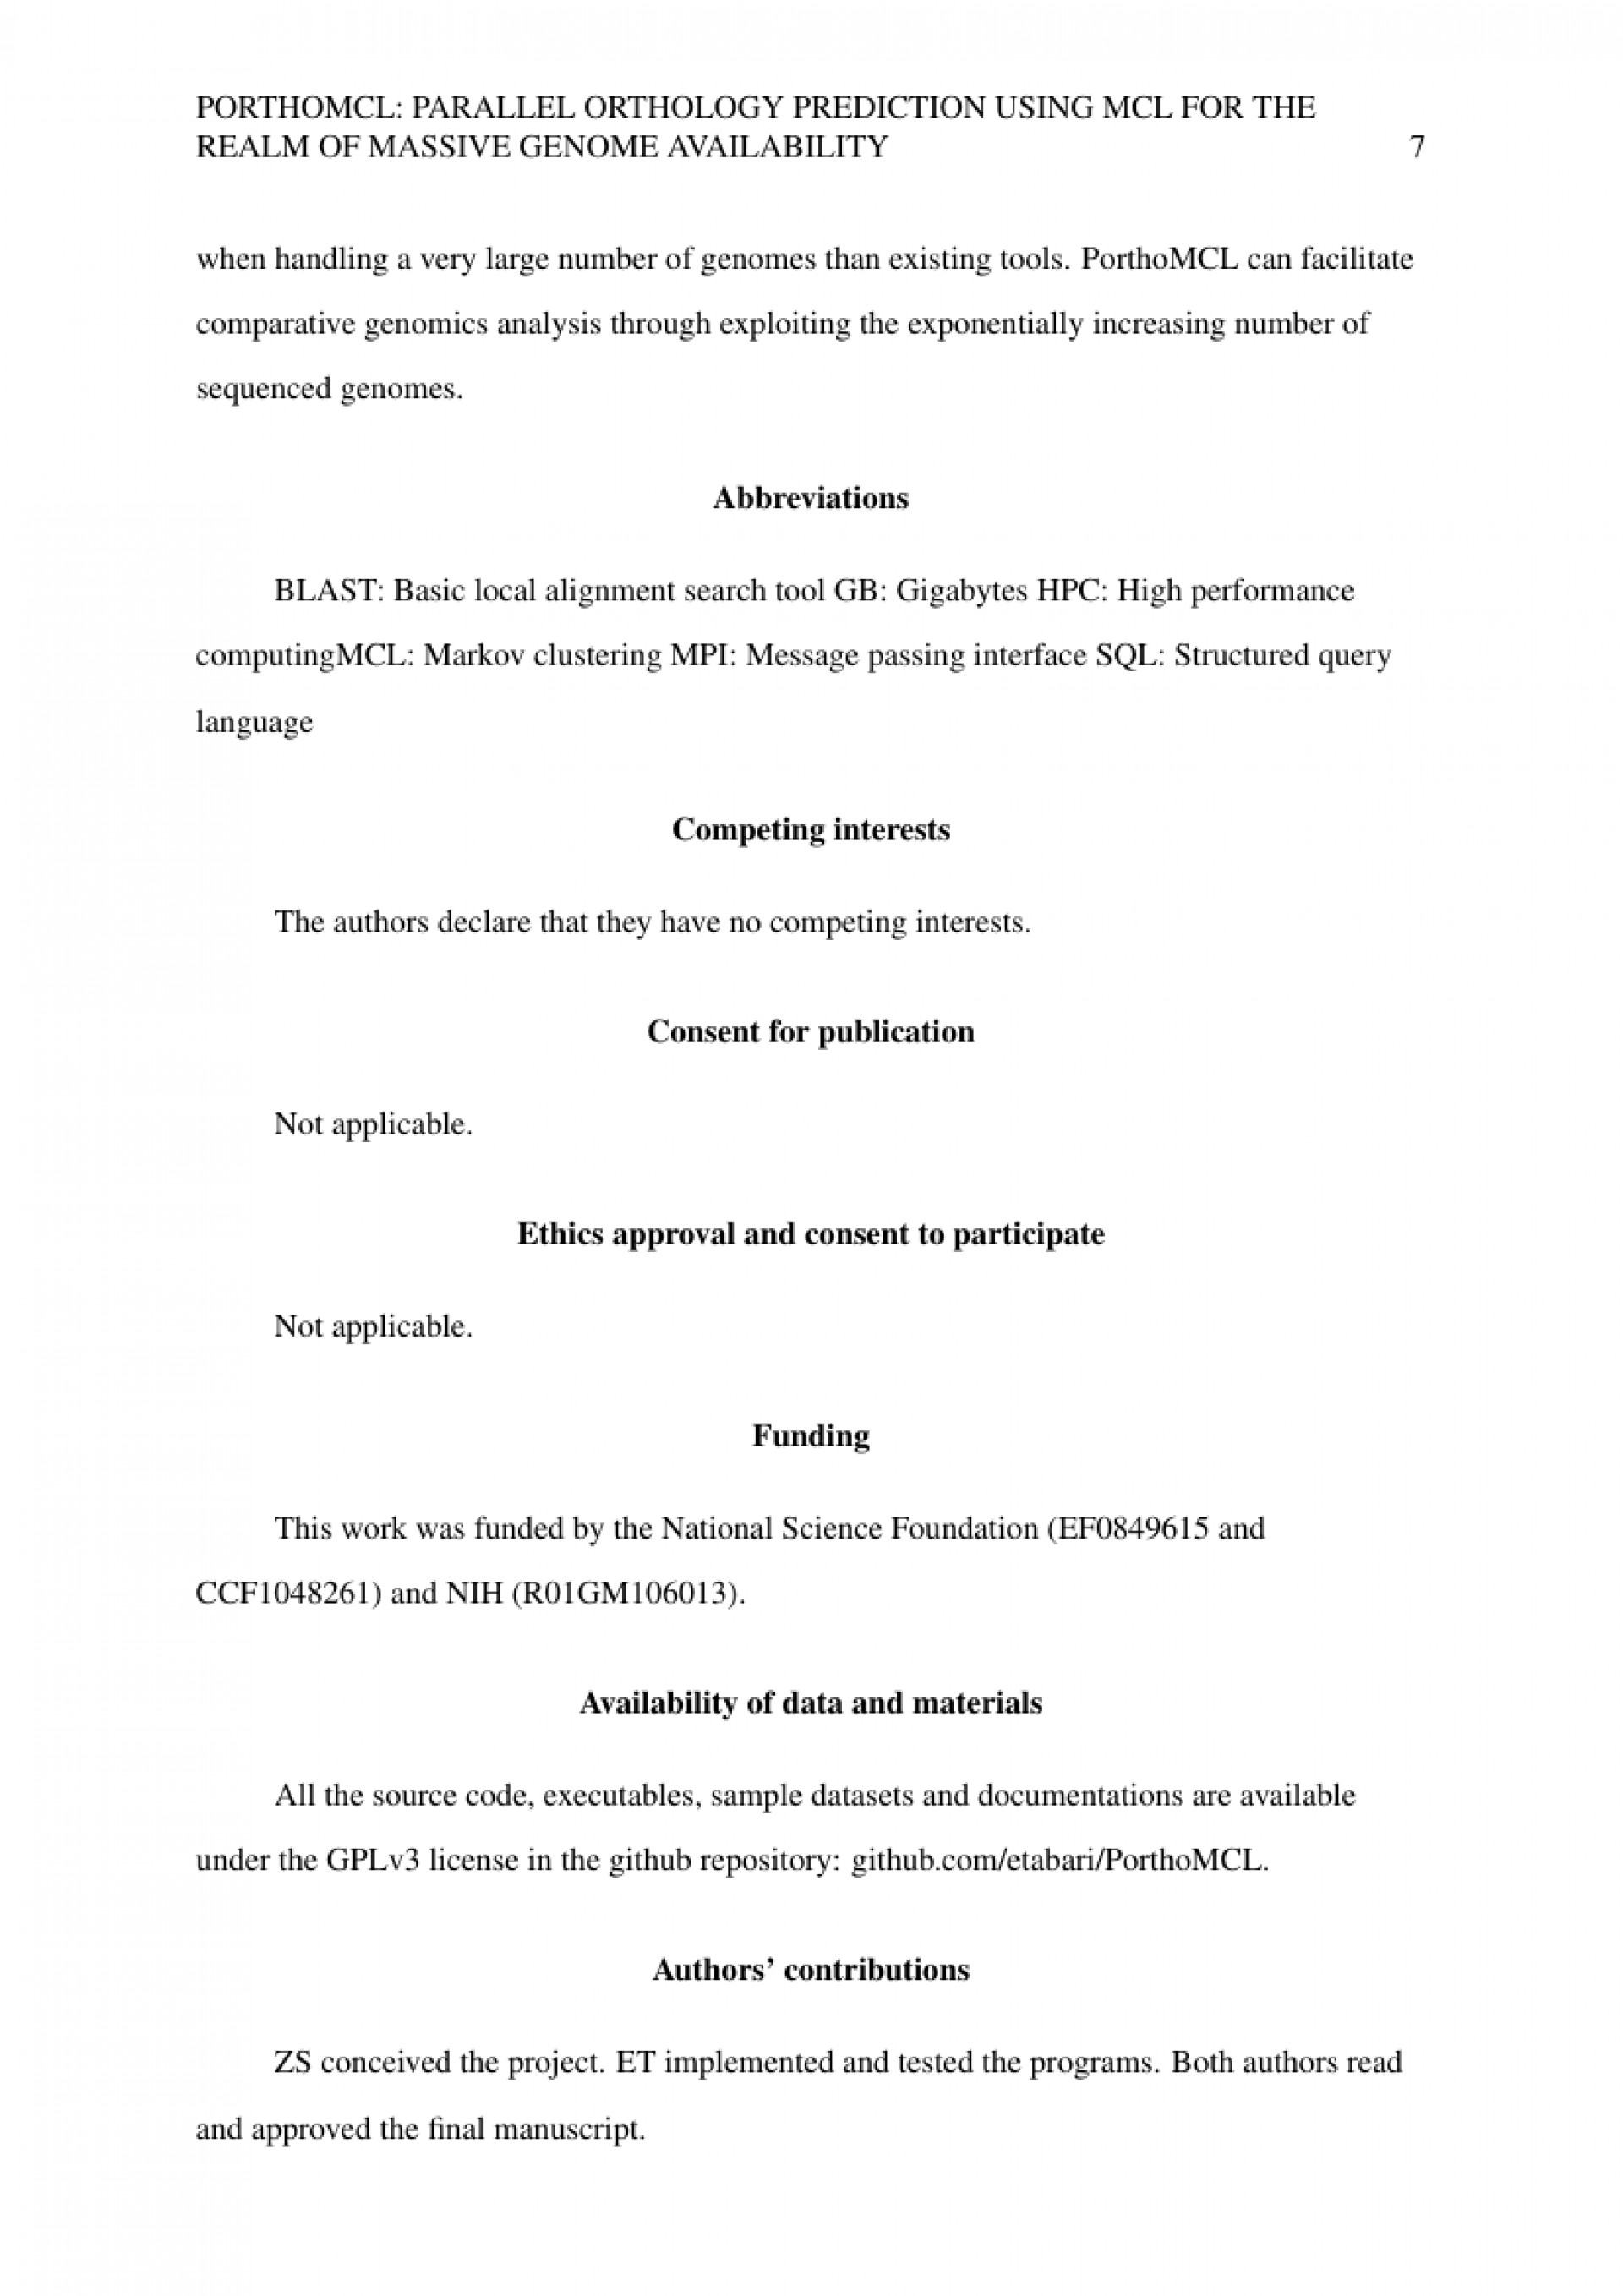 019 Output Research Paper Computer Science Papers Astounding Pdf Example Ieee In Latest 1920